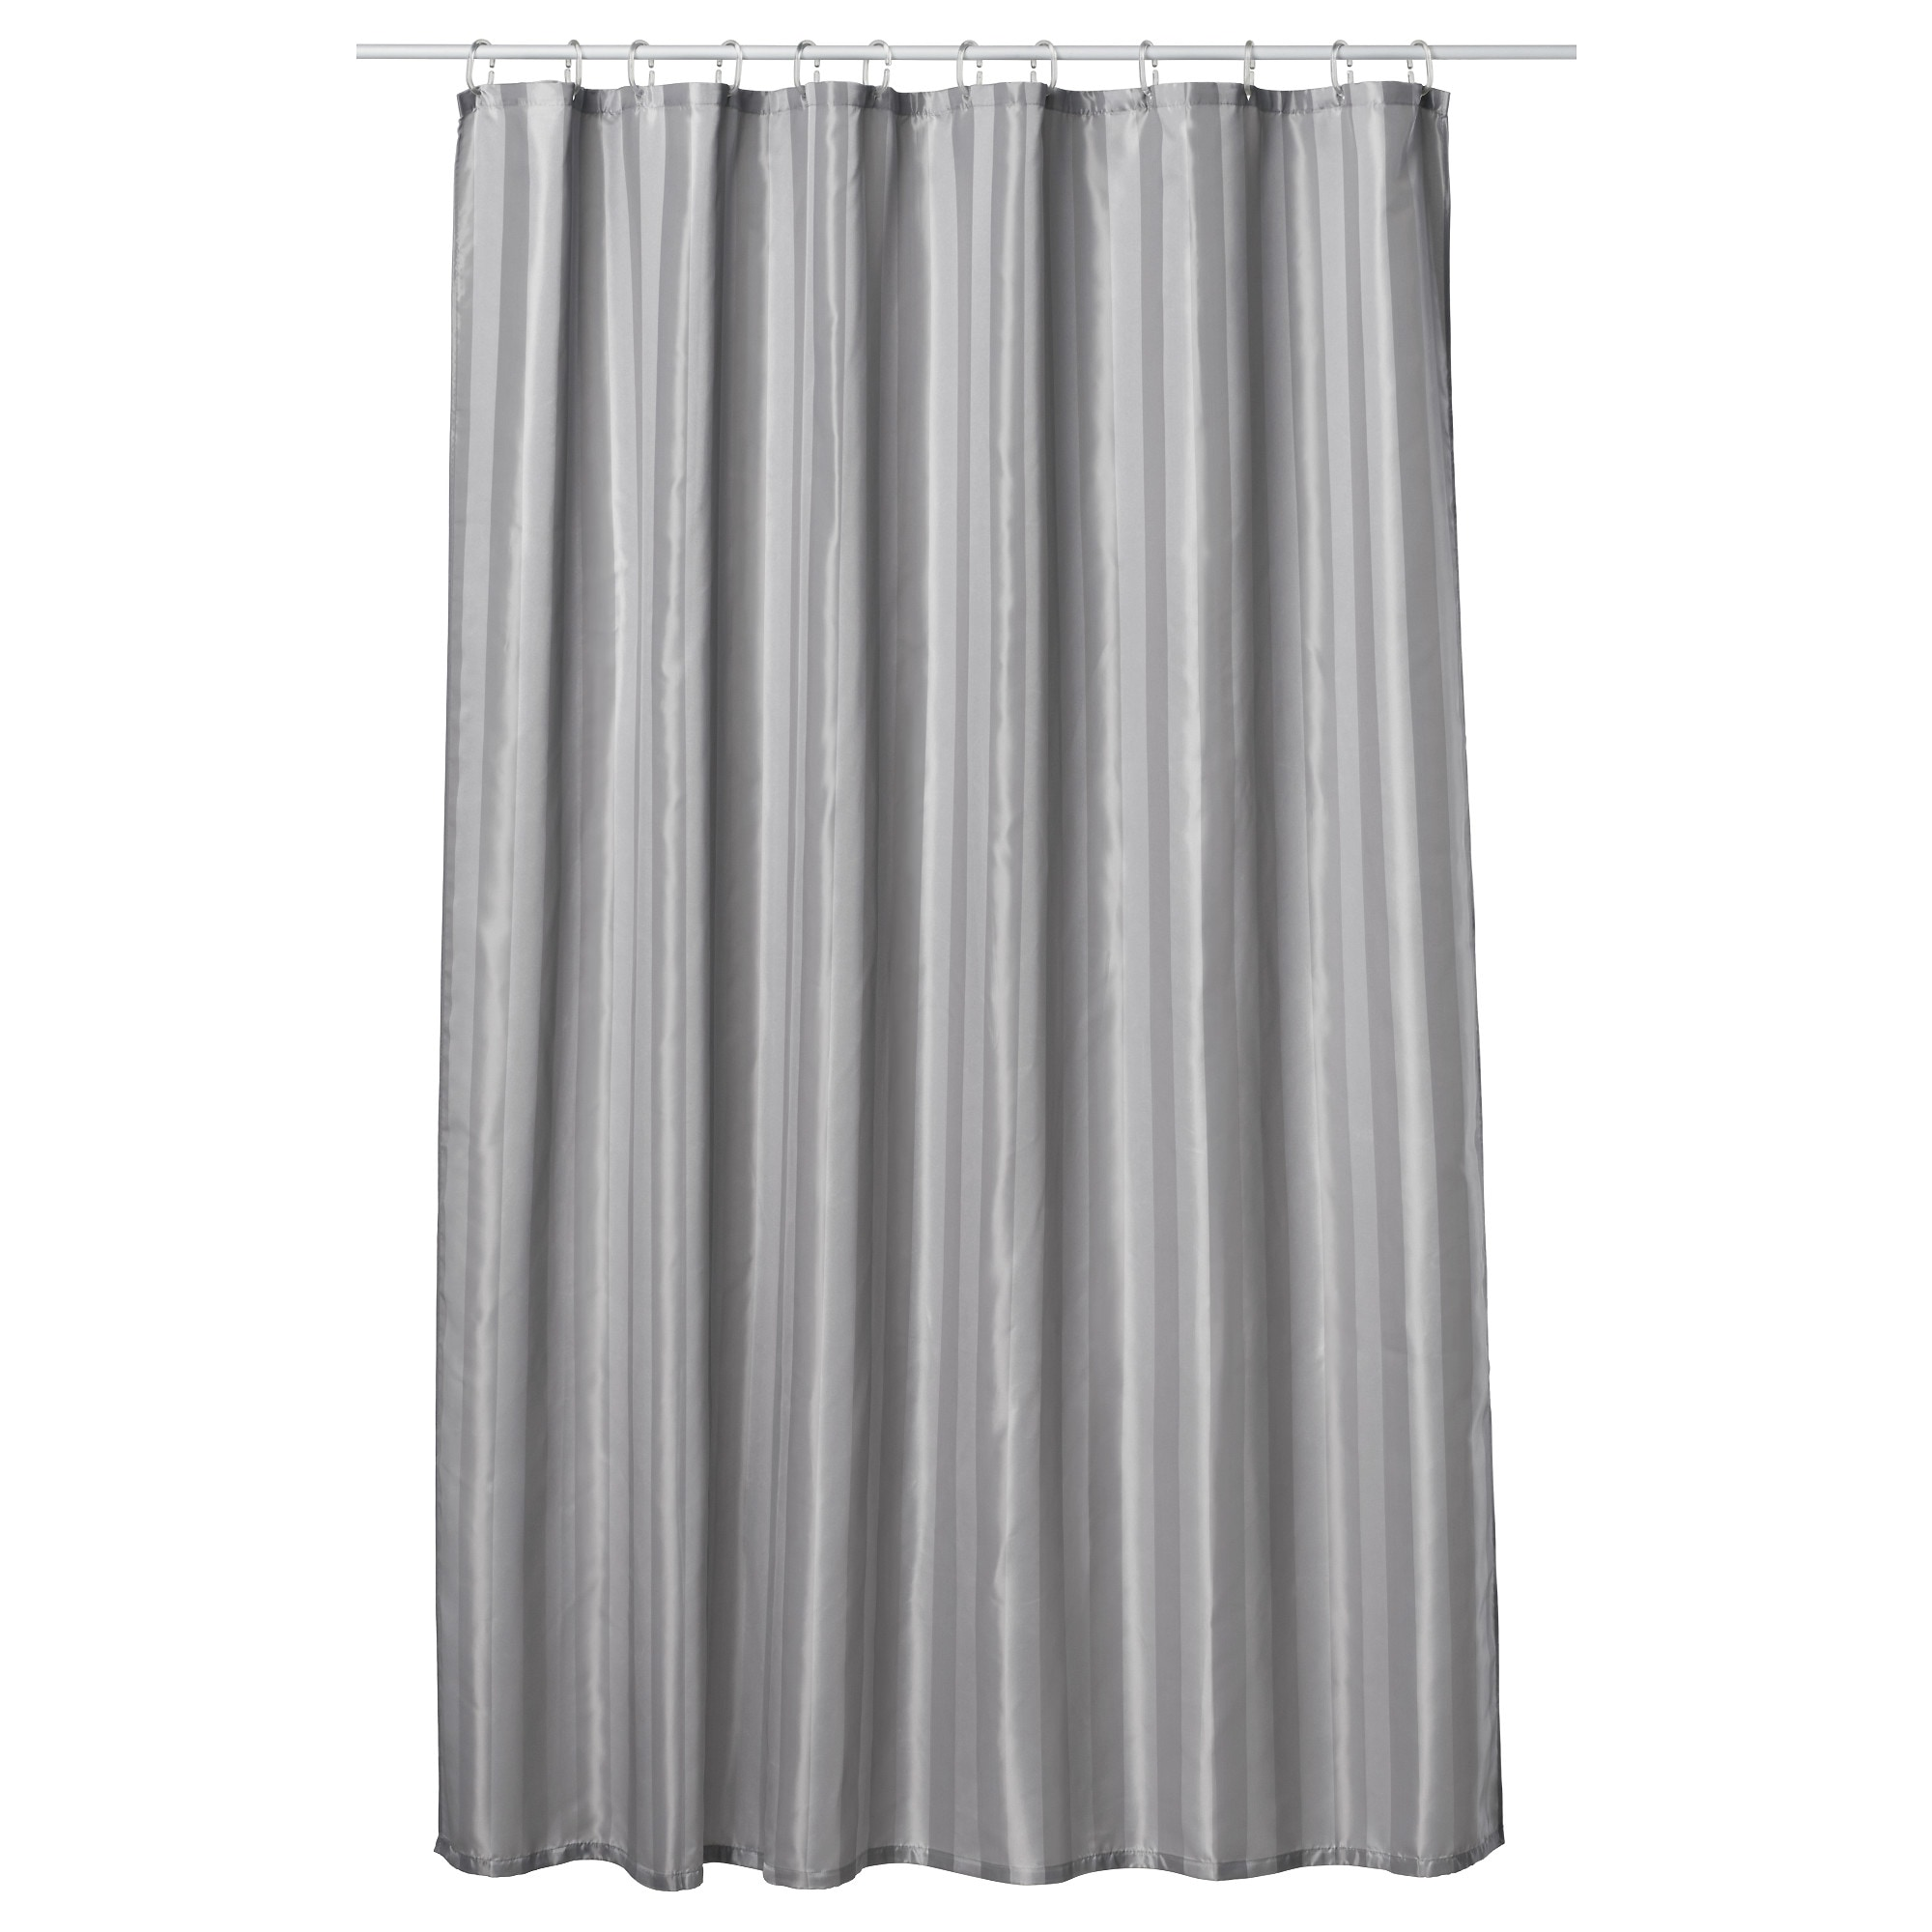 silver shower uncategorized curtains gratograt for the pic waffle inspiration styles sxs luxury white and curtain photos best of